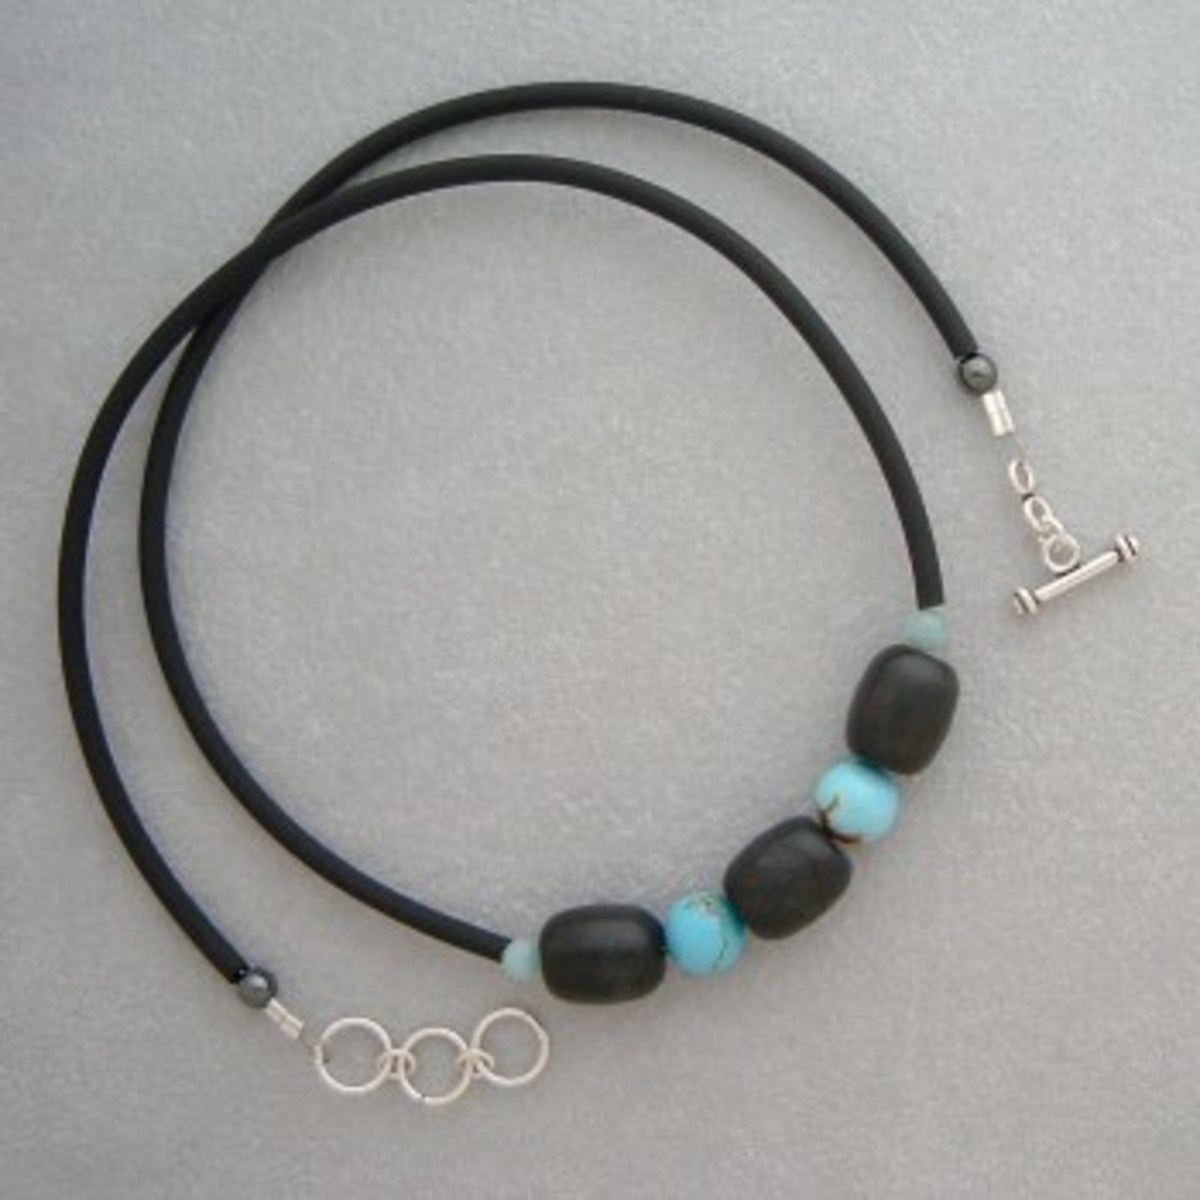 Surfer-style jewelry is popular with many teens